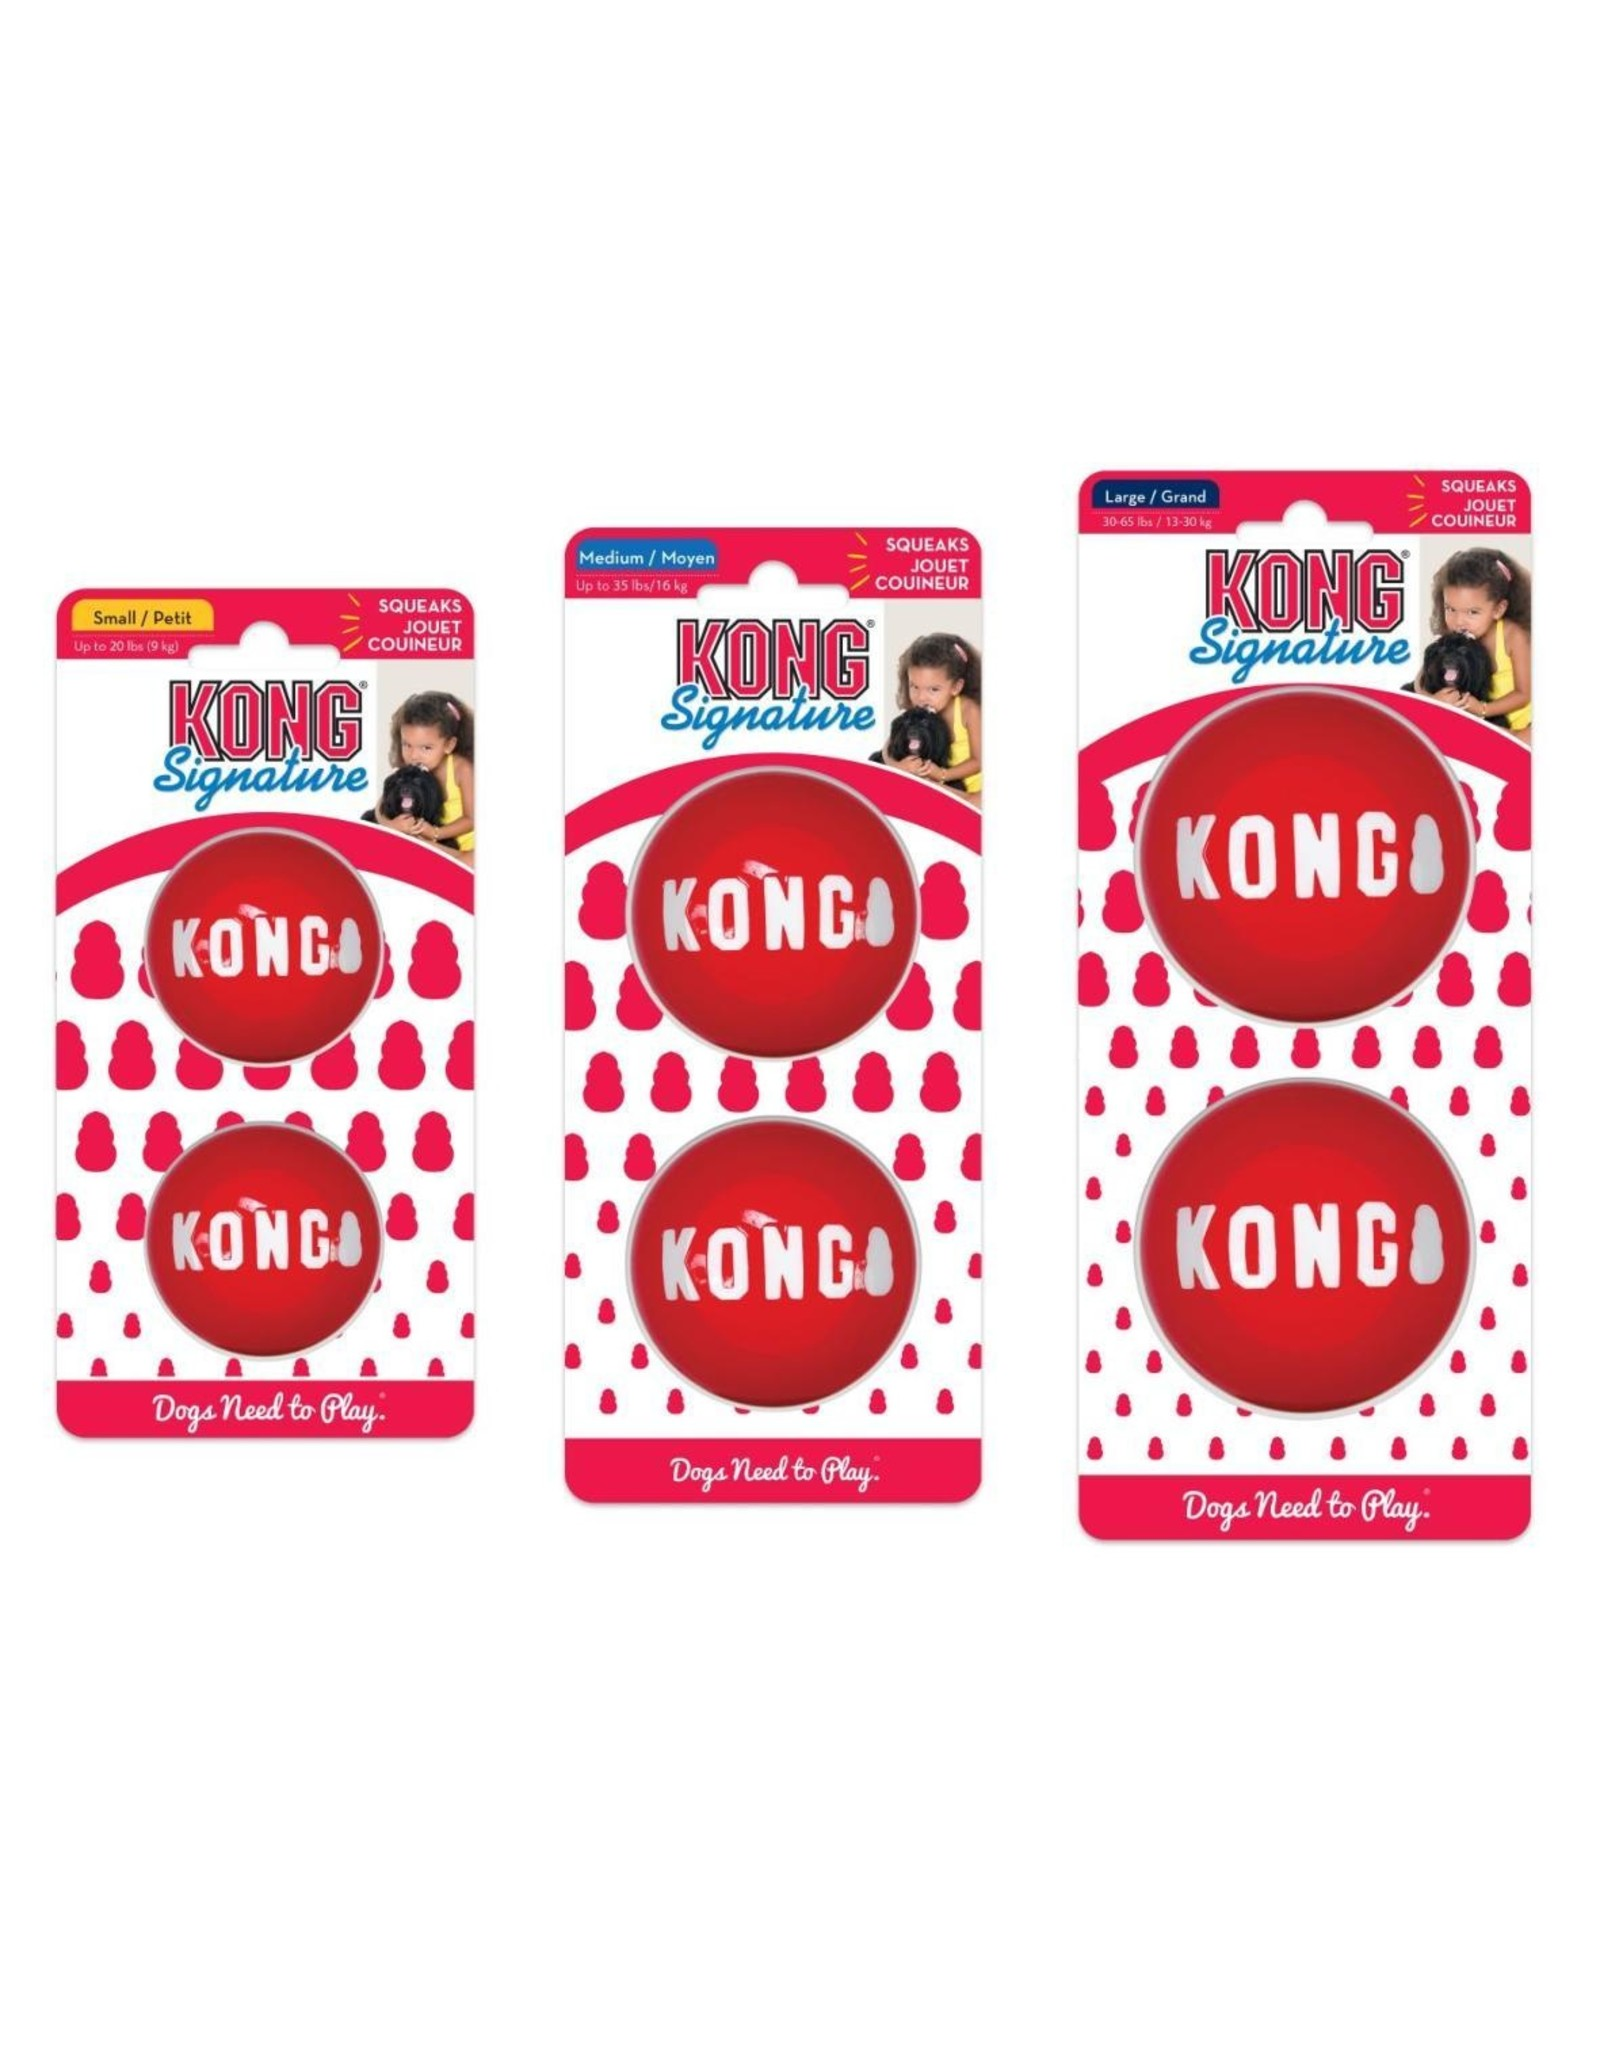 KONG SIGNATURE BALL LG RED 2PCK